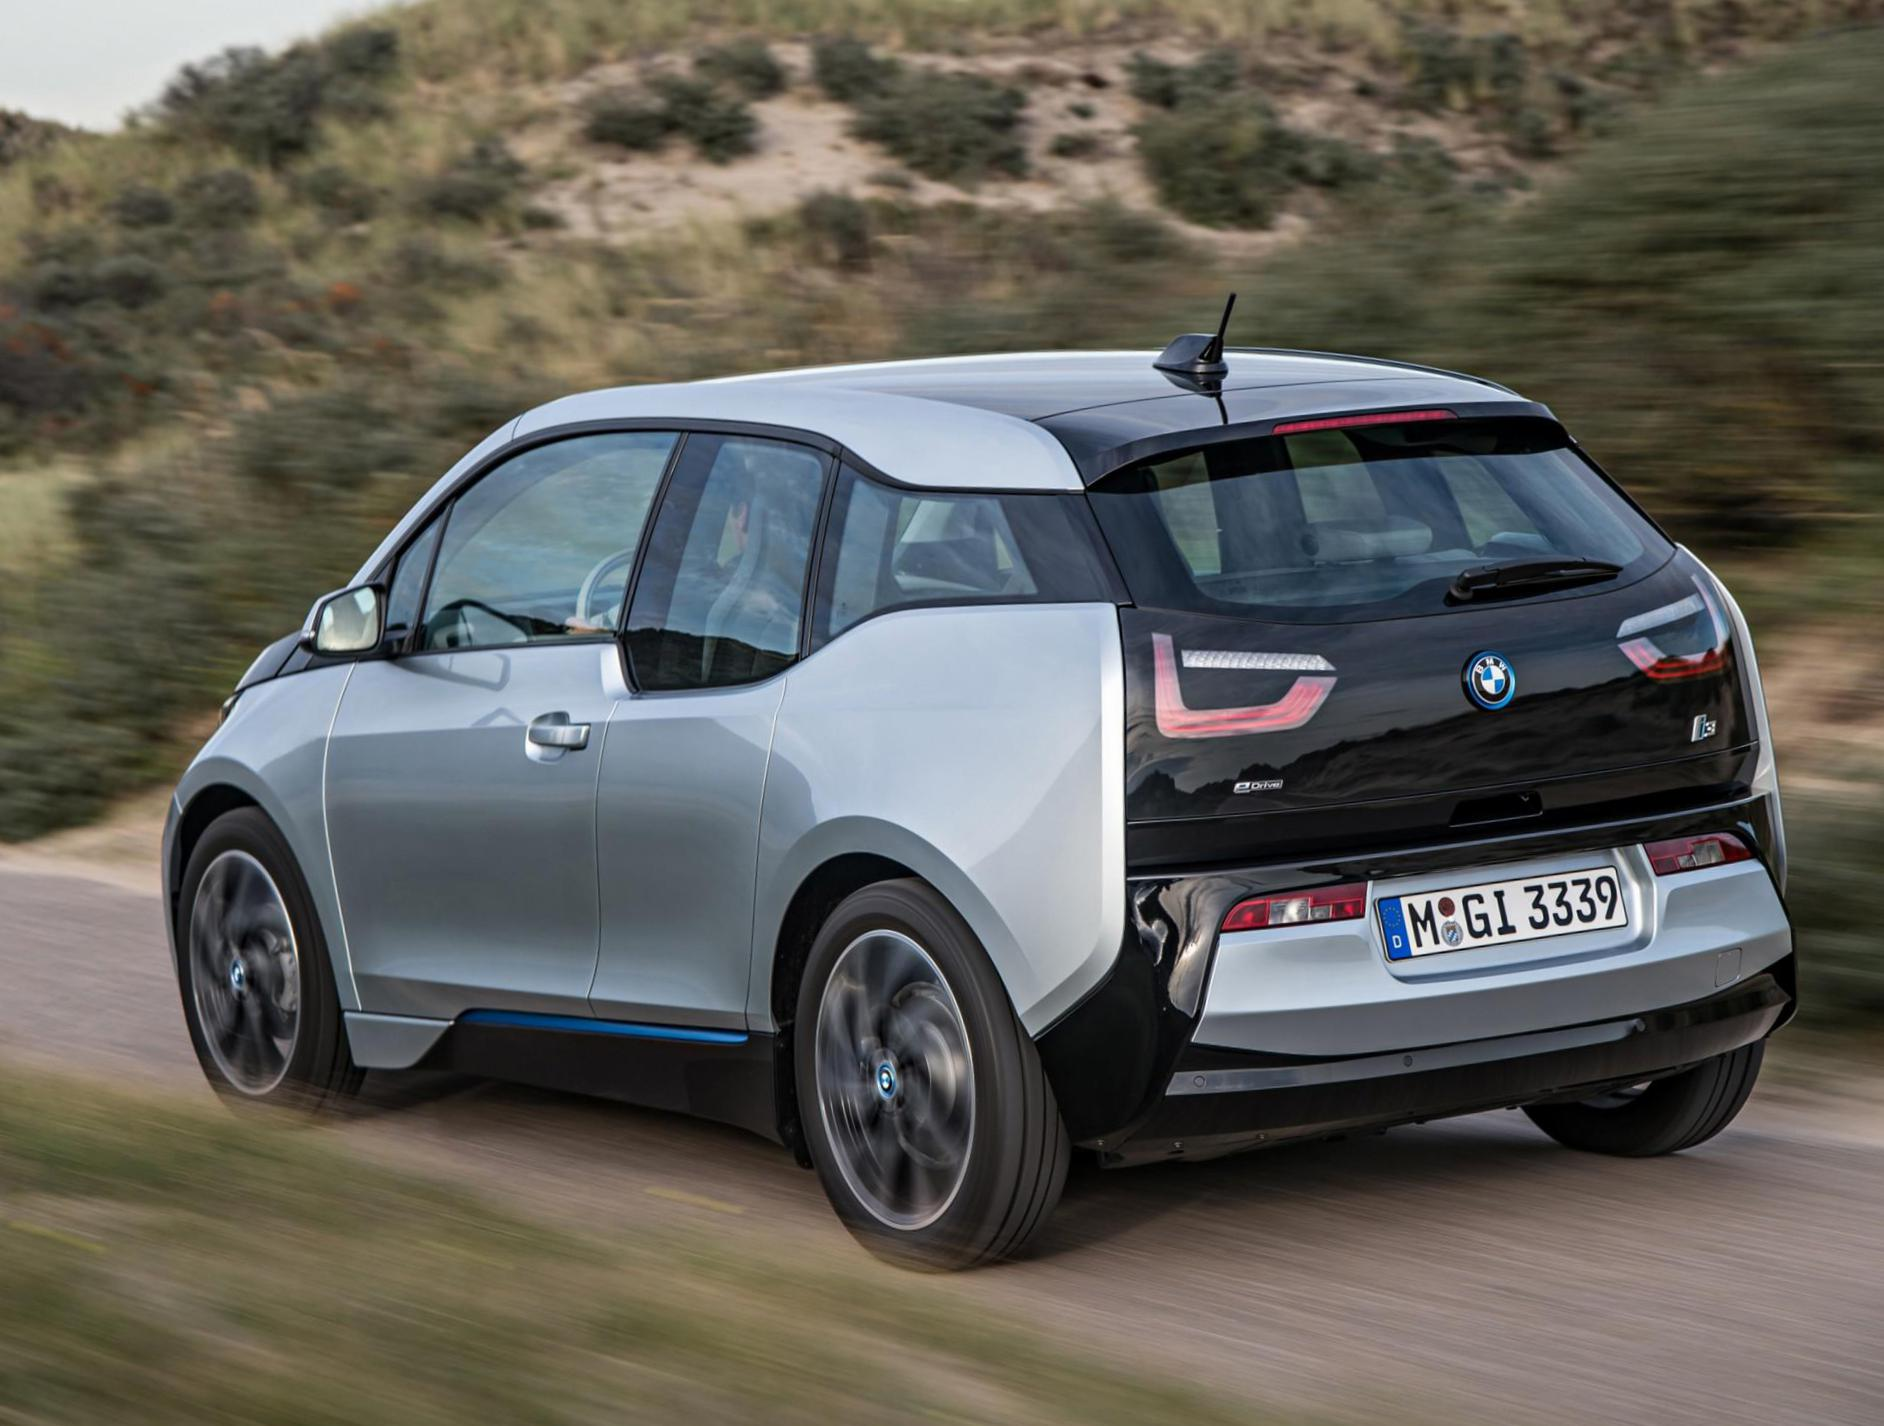 BMW i3 model wagon